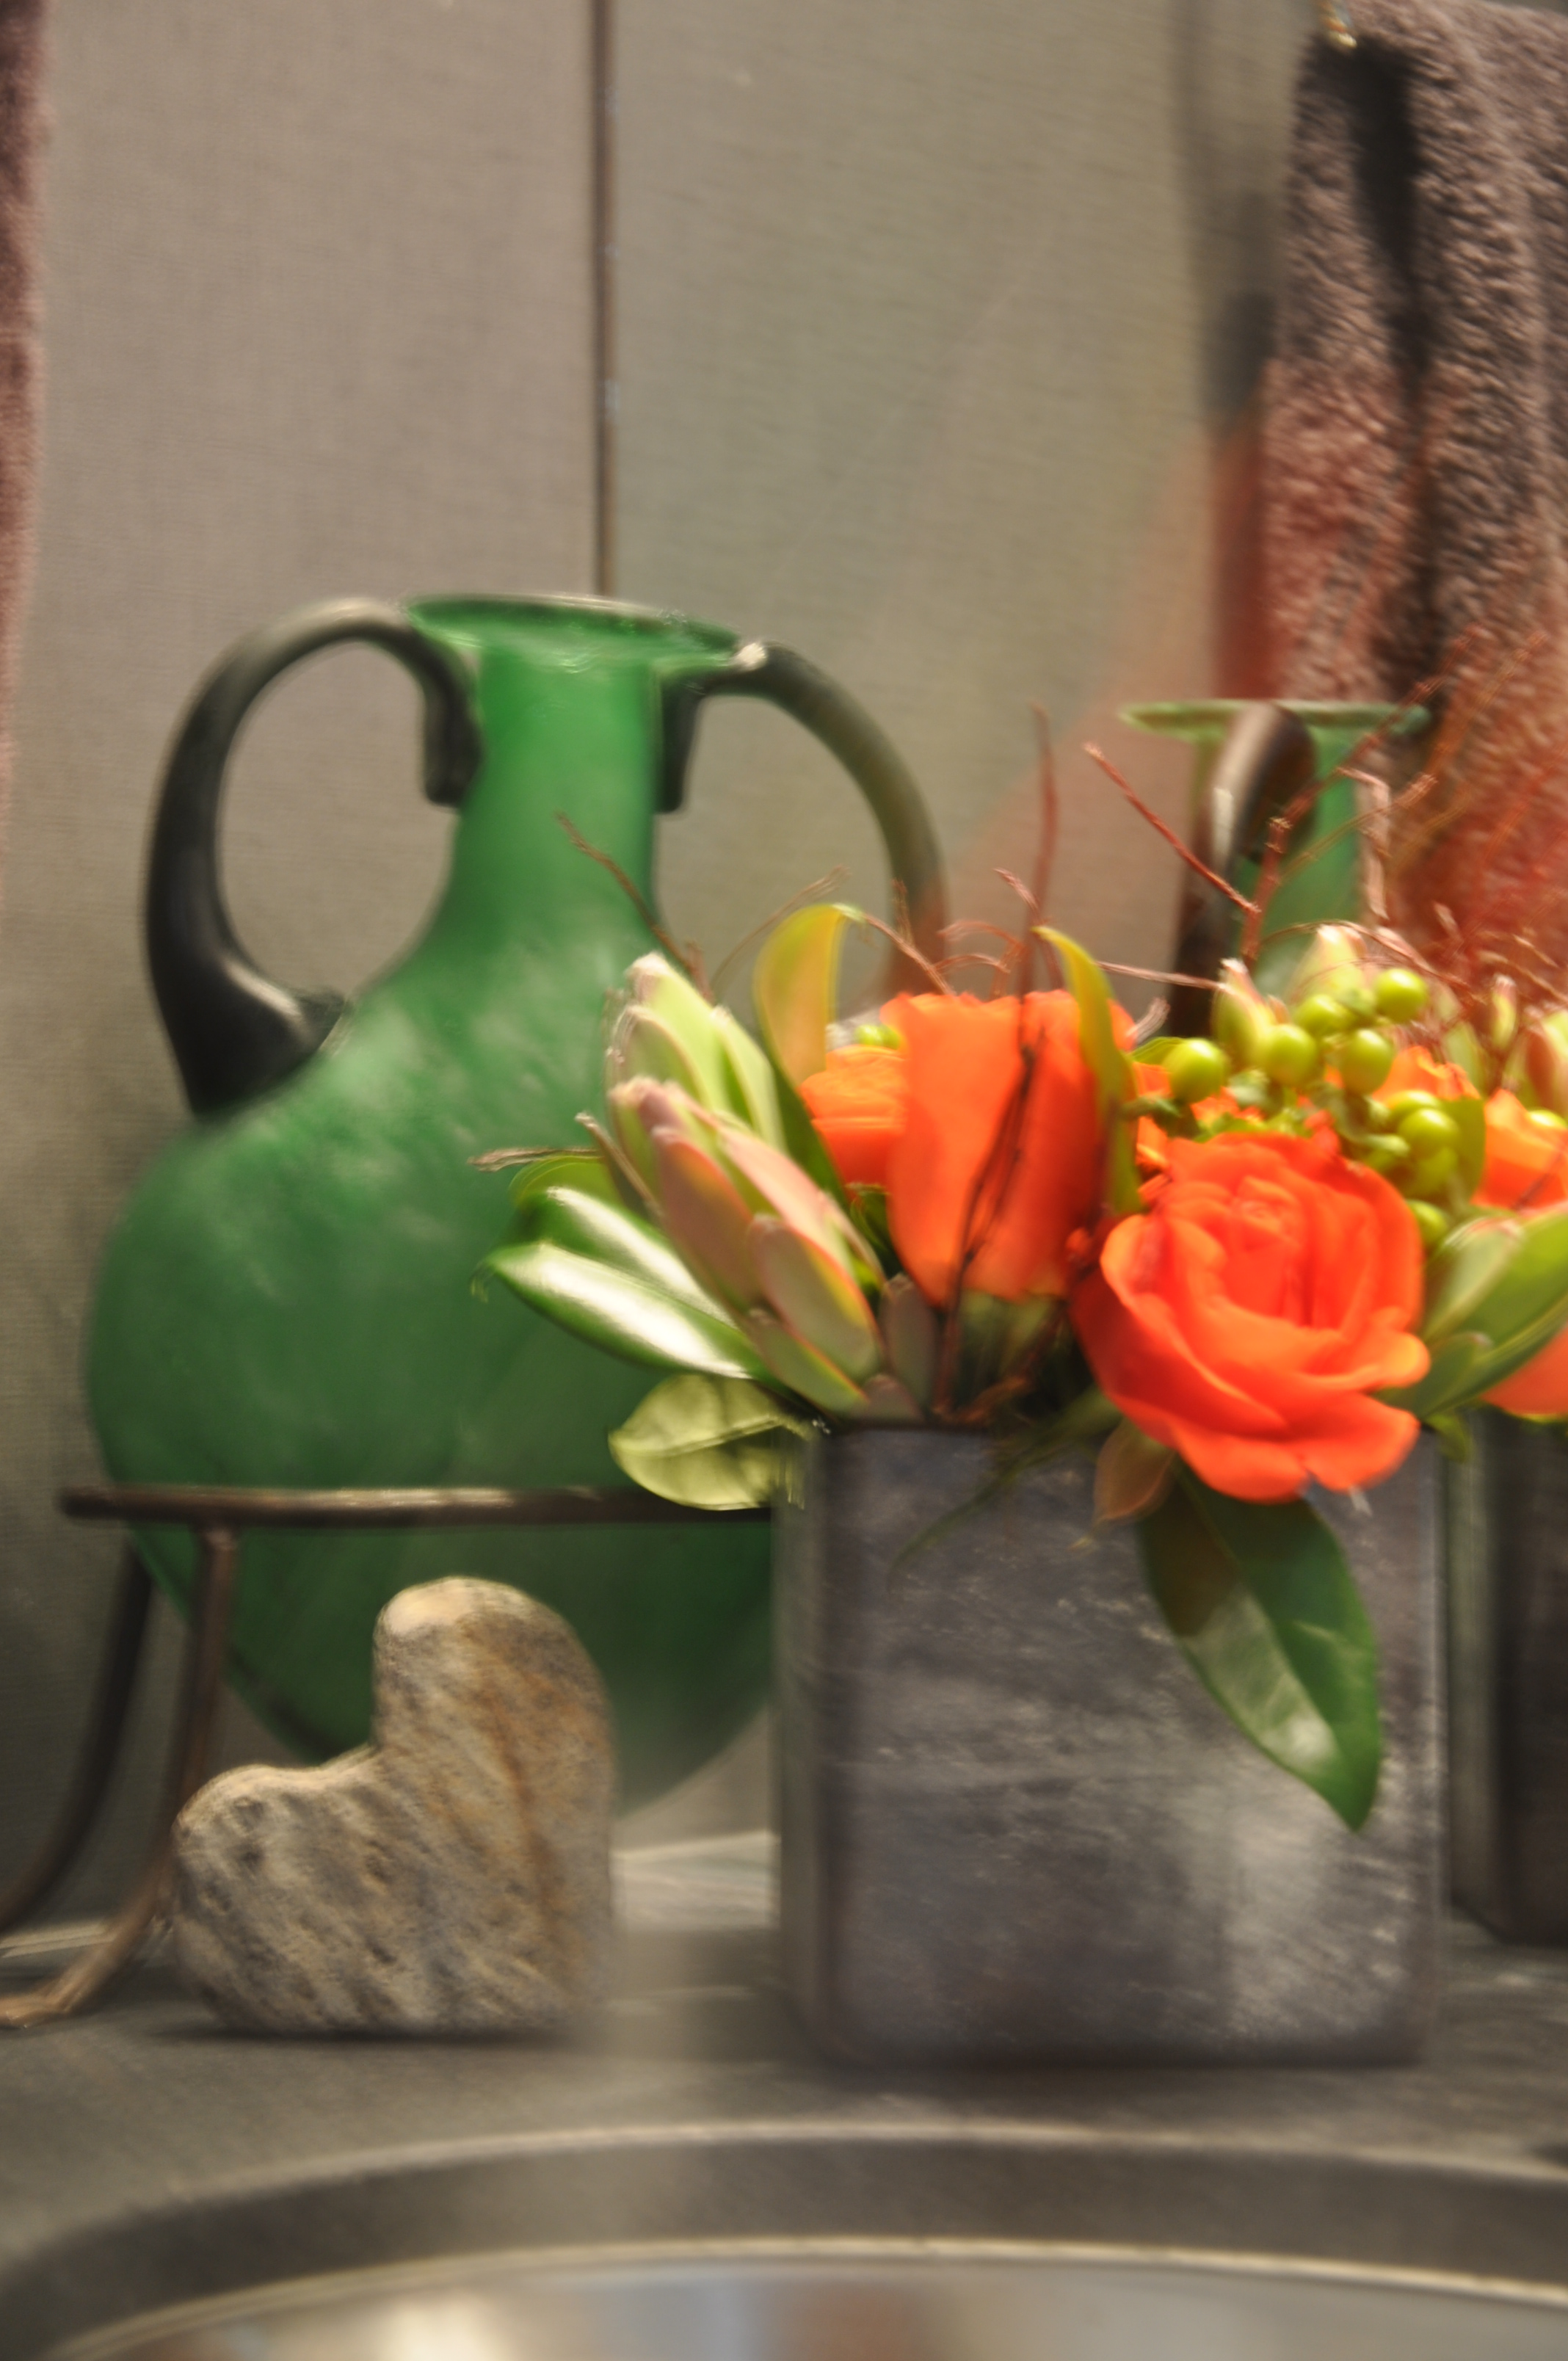 Powder Room: Fresh bright orange roses contrasting with bold charcoals